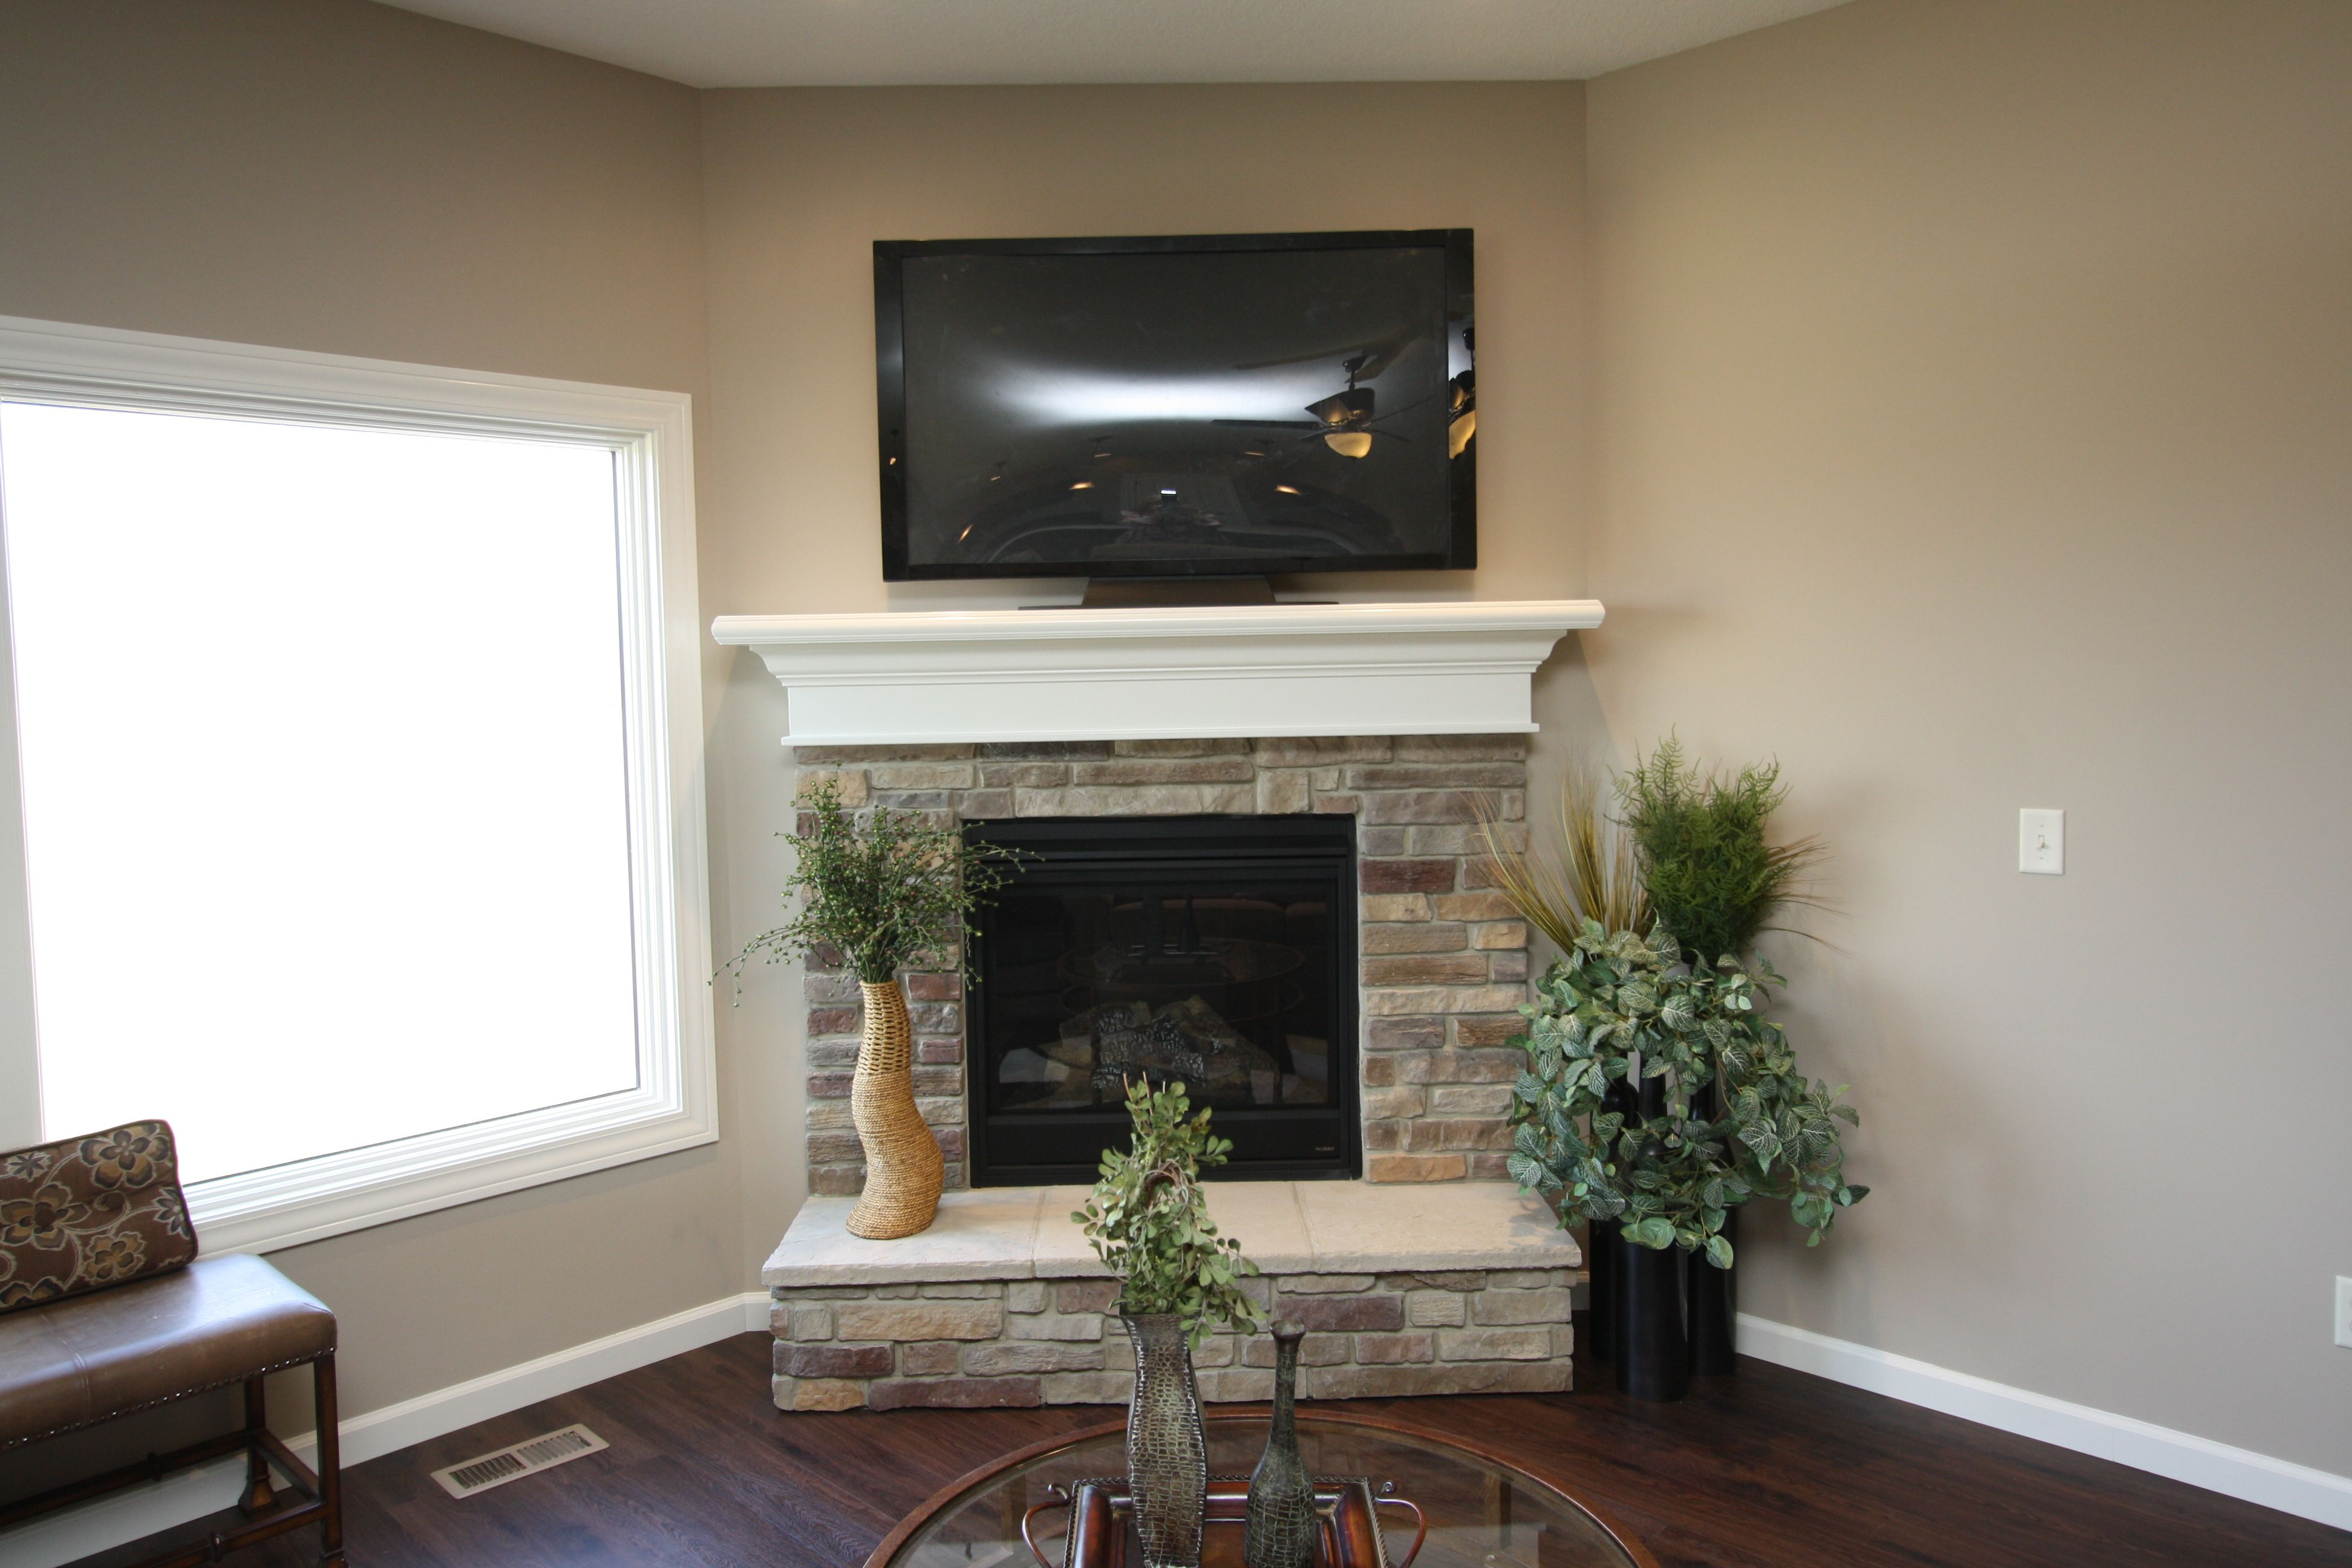 Stoned Mantle High Fireplace Fox River Laytite J\u0026N Stone & Stoned Mantle High Fireplace Fox River Laytite J\u0026N Stone ...